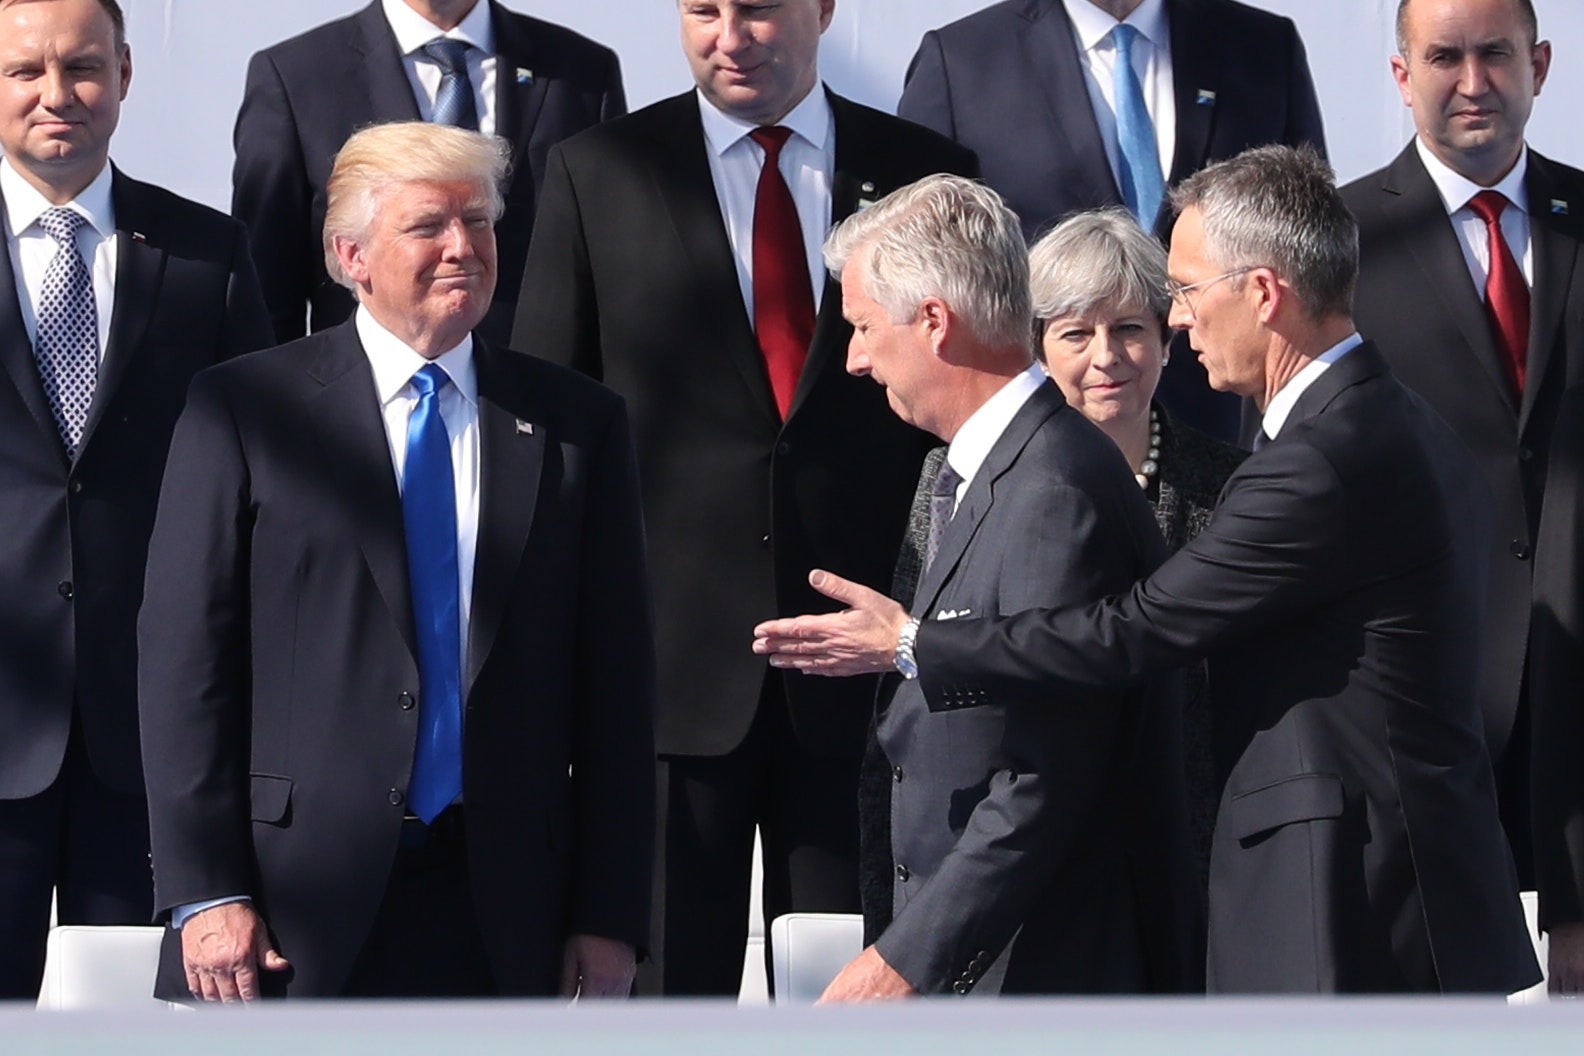 US President Donald Trump, King Philippe - Filip of Belgium, Prime Minister of the United Kingdom Theresa May and NATO Secretary General Jens Stoltenberg pictured during the unveiling ceremony of the new headquarters of NATO, North Atlantic Treaty Organization, in Evere, Brussels, Thursday 25 May 2017.  BELGA PHOTO BENOIT DOPPAGNE